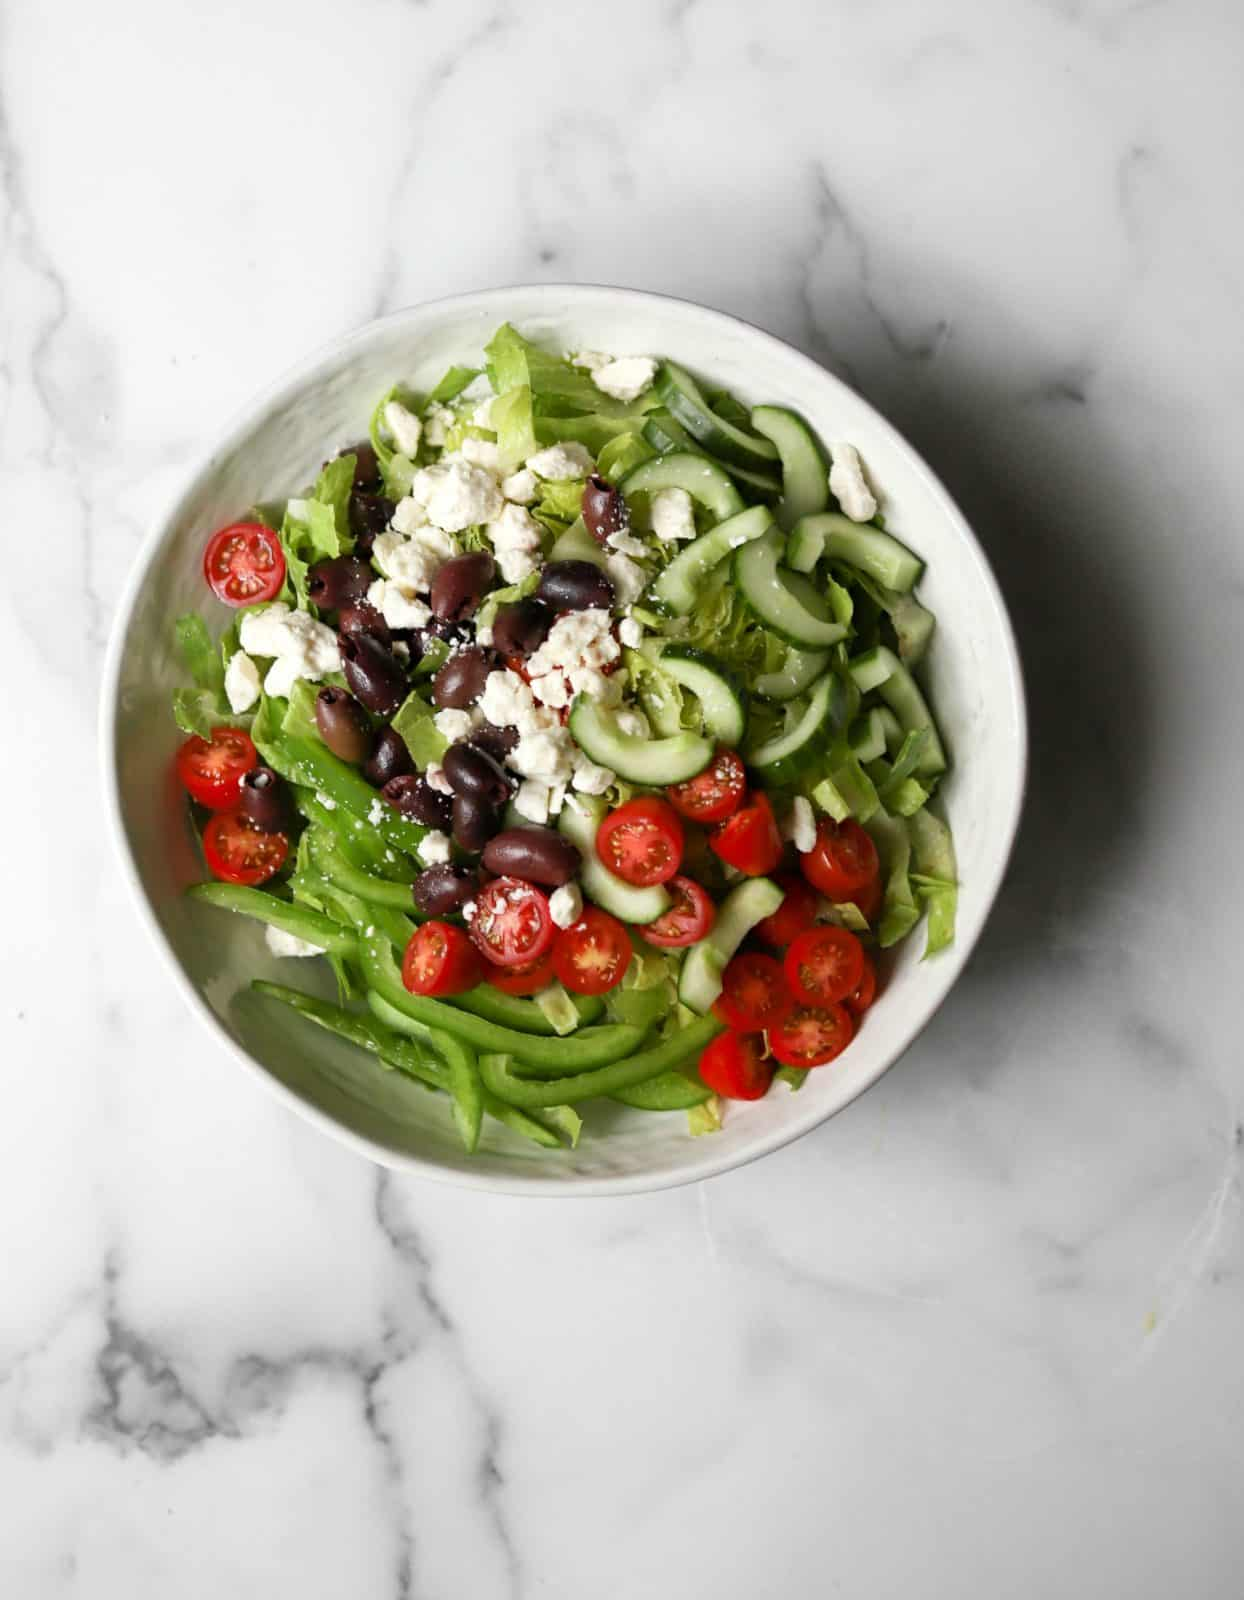 Greek salad in white bowl filled with a variety of vegetables